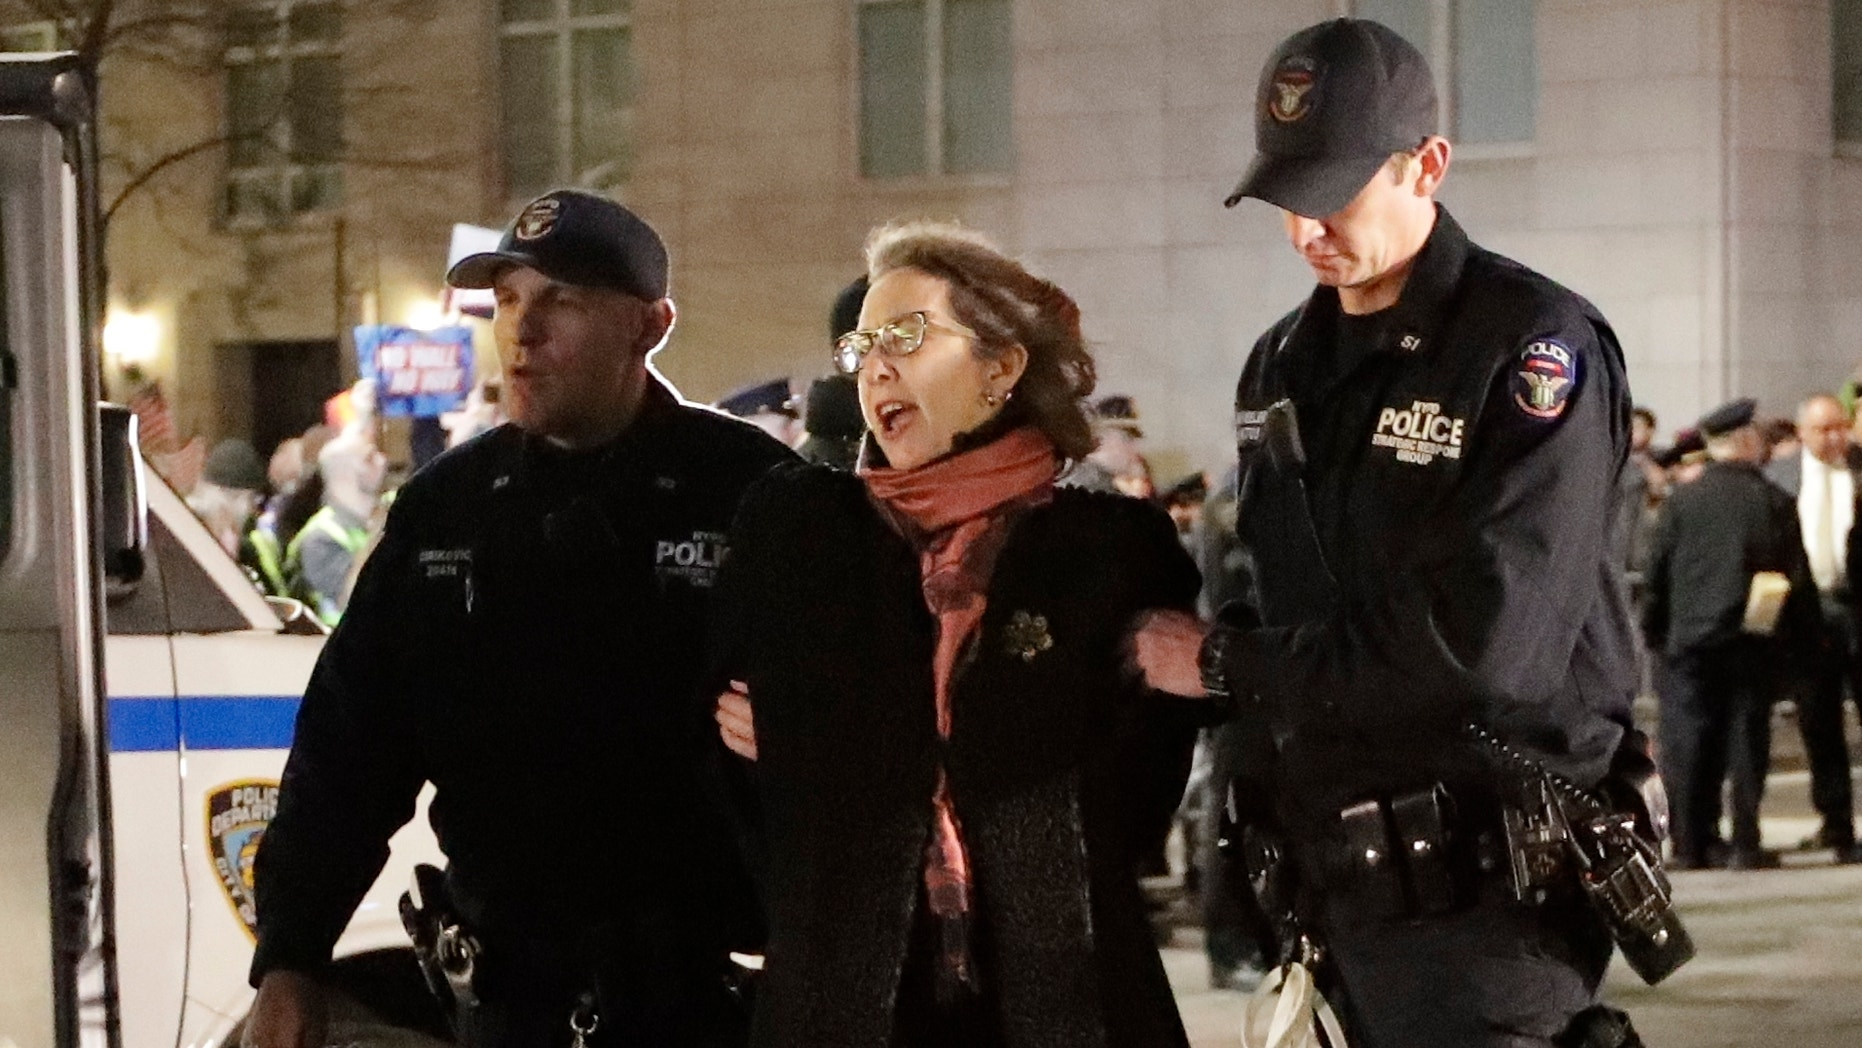 A protester is taken into custody outside Trump International Hotel & Tower on Friday, Feb. 15, 2019, in New York. Some people have been arrested while protesting President Donald Trump's national emergency declaration. The NYPD wasn't immediately able to say how many people were taken into custody outside the hotel. (AP Photo/Frank Franklin II)